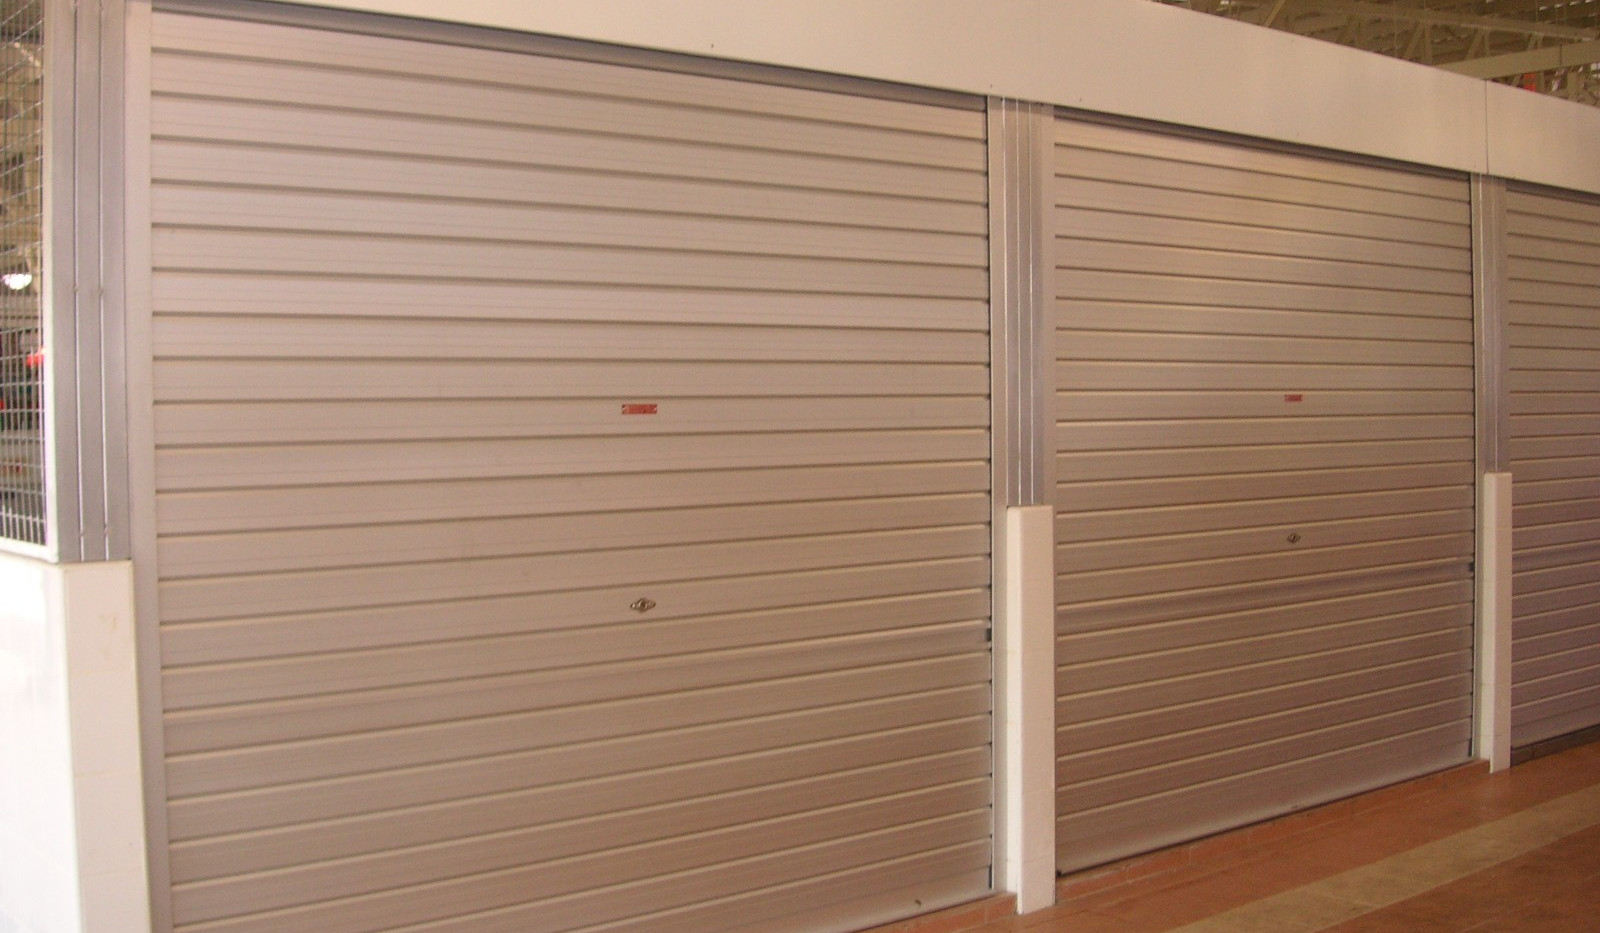 Aluminium Roller Shutter _ a typical mar